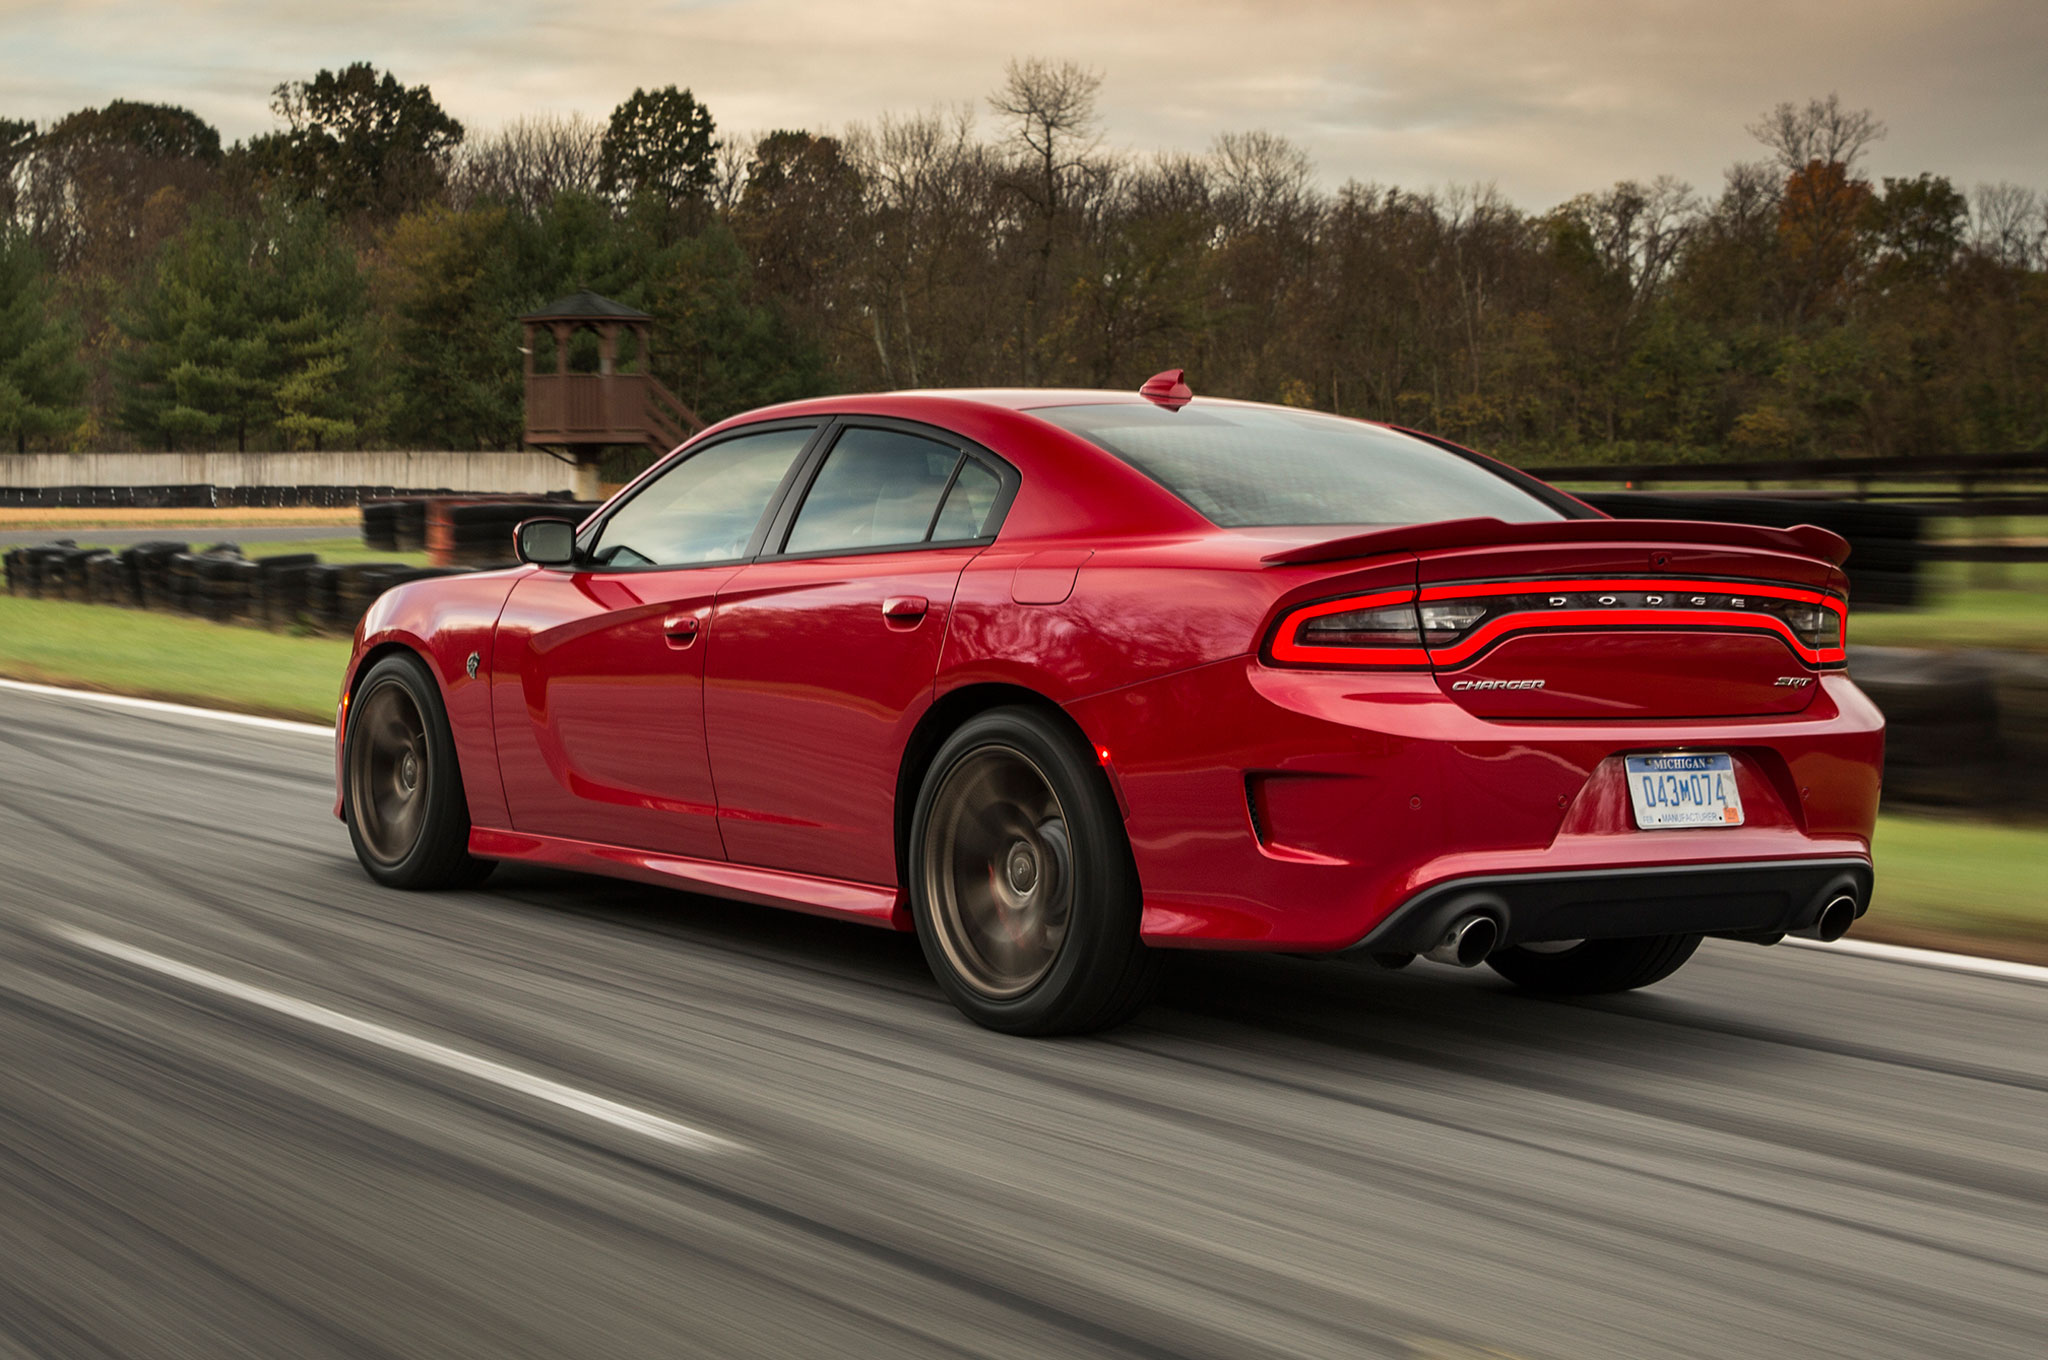 17 Charger Hellcat >> 2016 Dodge Challenger, Charger Hellcat Prices Increase $3,650-$4,200